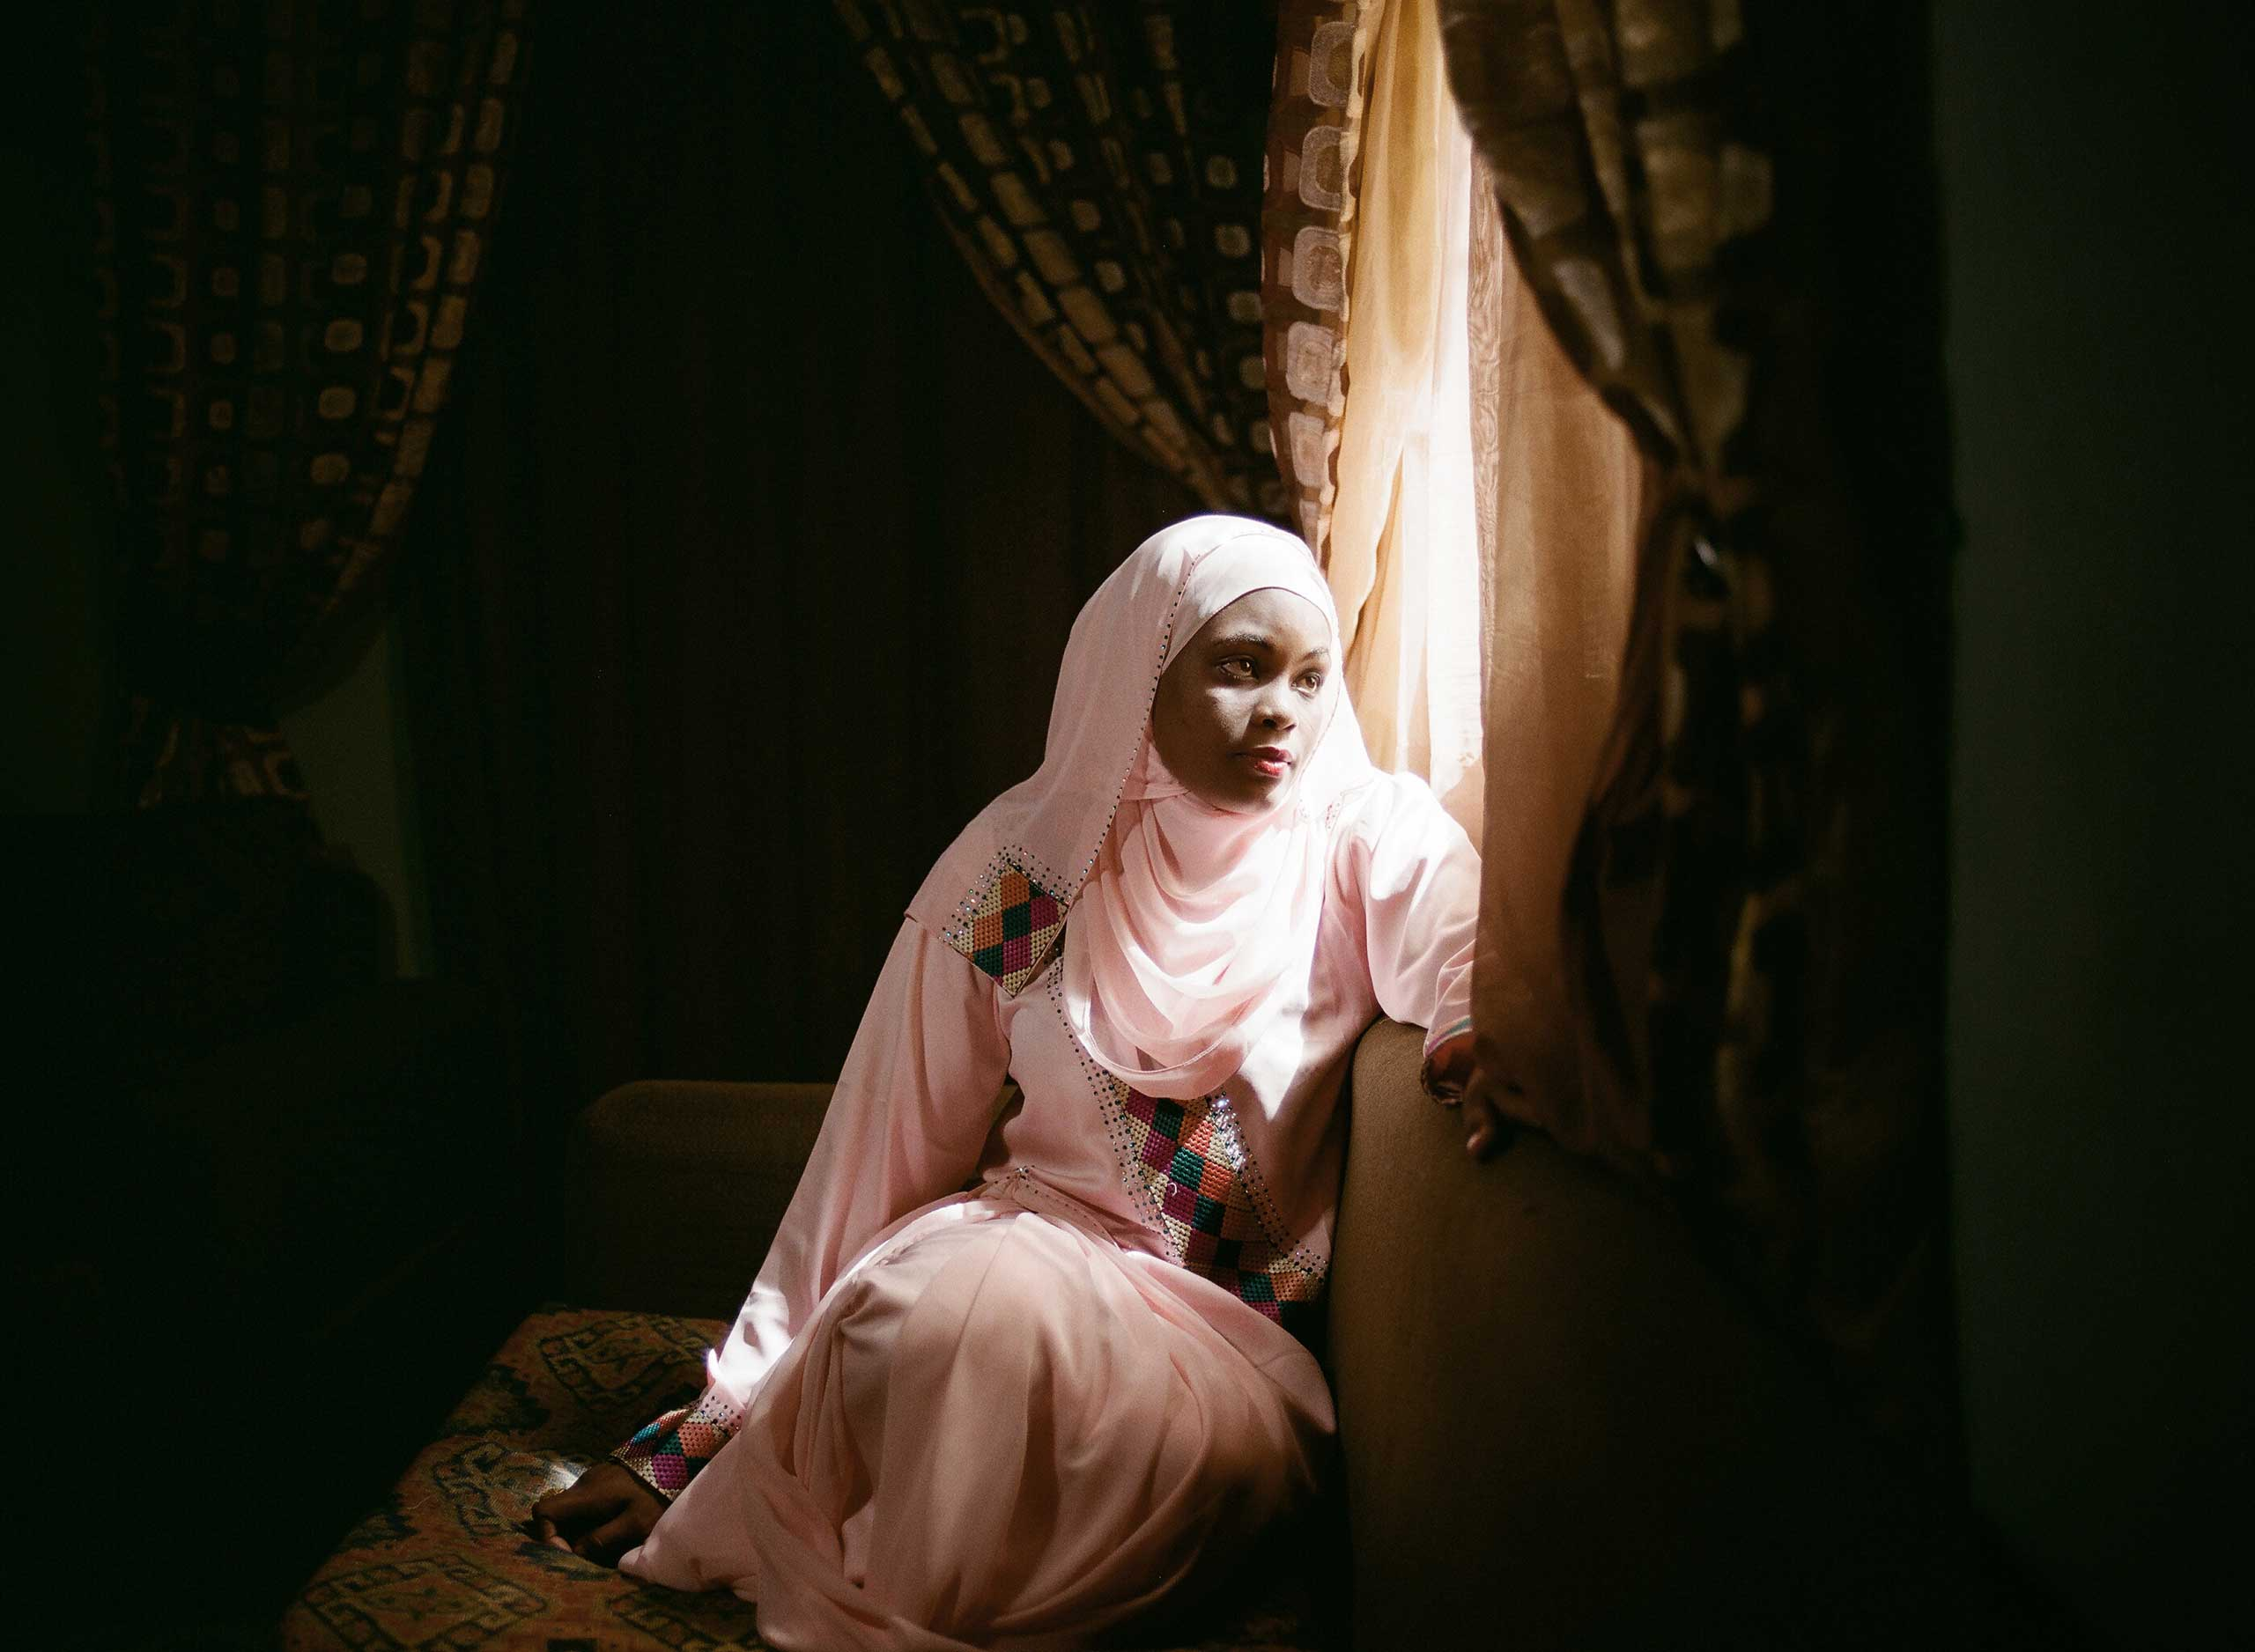 """Farida Ado, age 27, is a romance novelist,  one of a small but significant contingent of women in Northern Nigeria writing books called Littattafan soyayya, Hausa for """"love literature,"""" Kano ,April 15, 2013."""